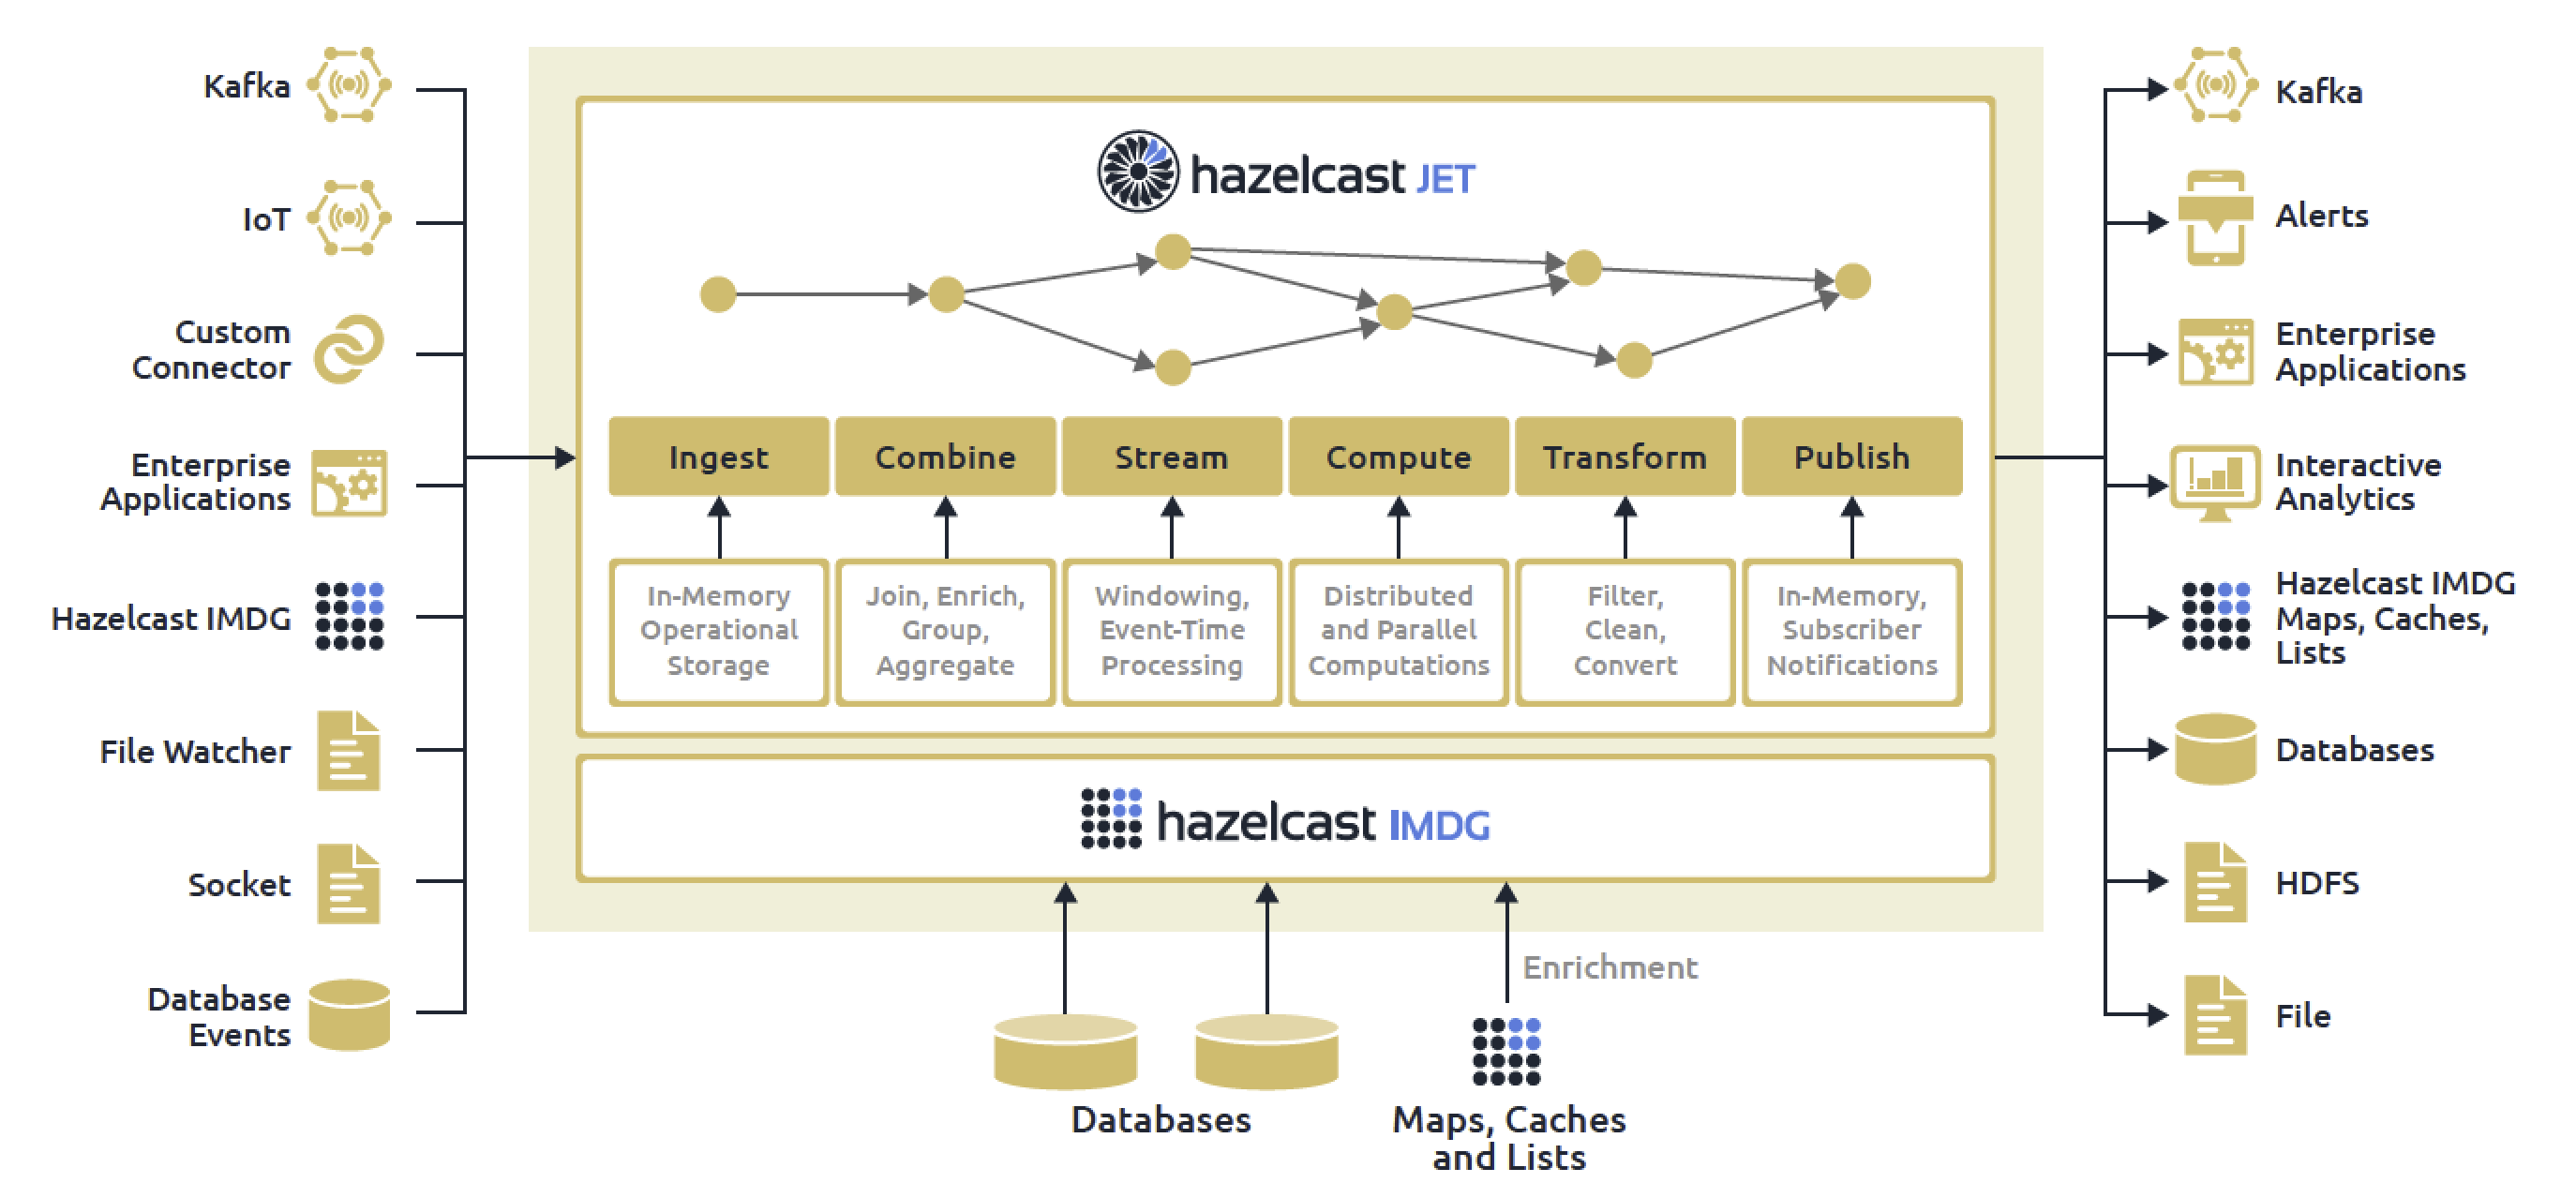 Hazelcast provides stream processing capabilities as part of the in-memory computing platform.